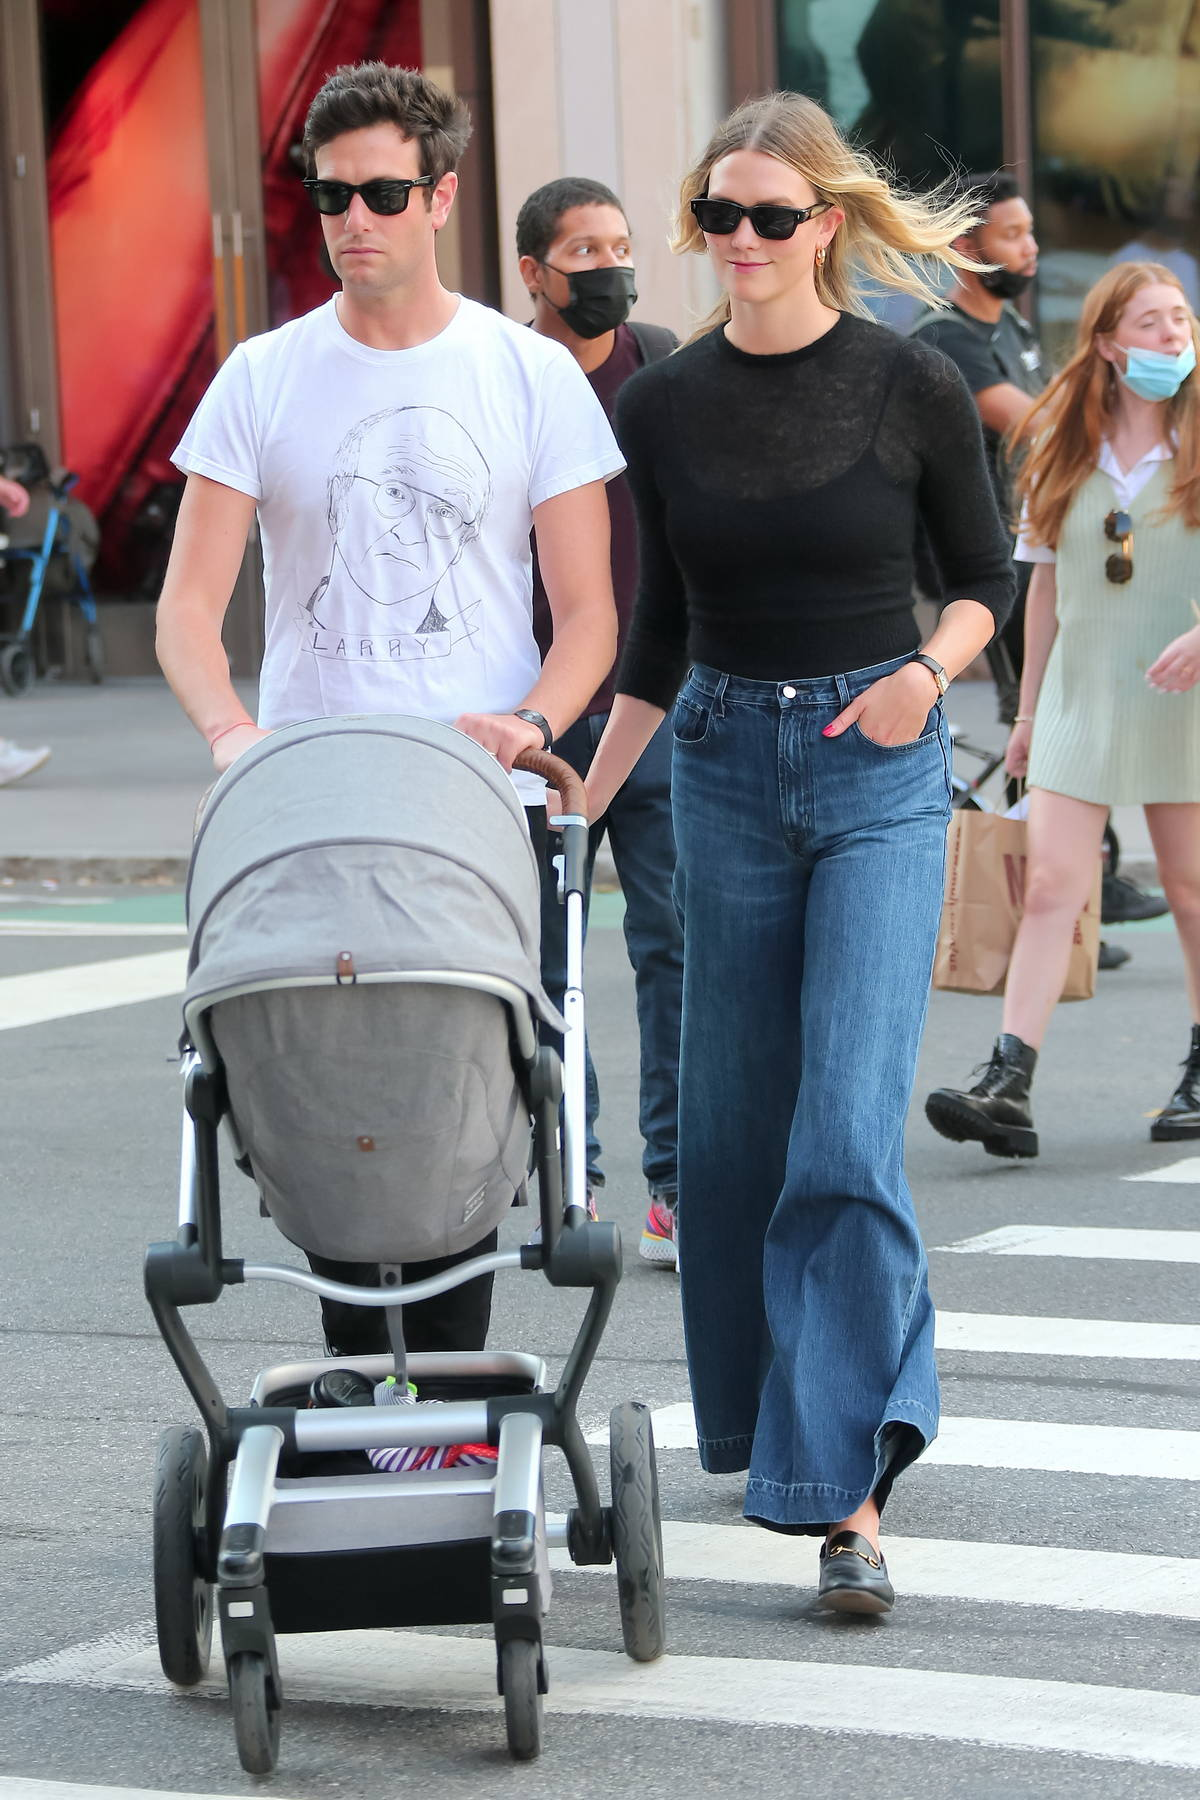 Karlie Kloss steps out for a stroll around Washington Square Park with husband Joshua Kushner and their baby boy in New York City